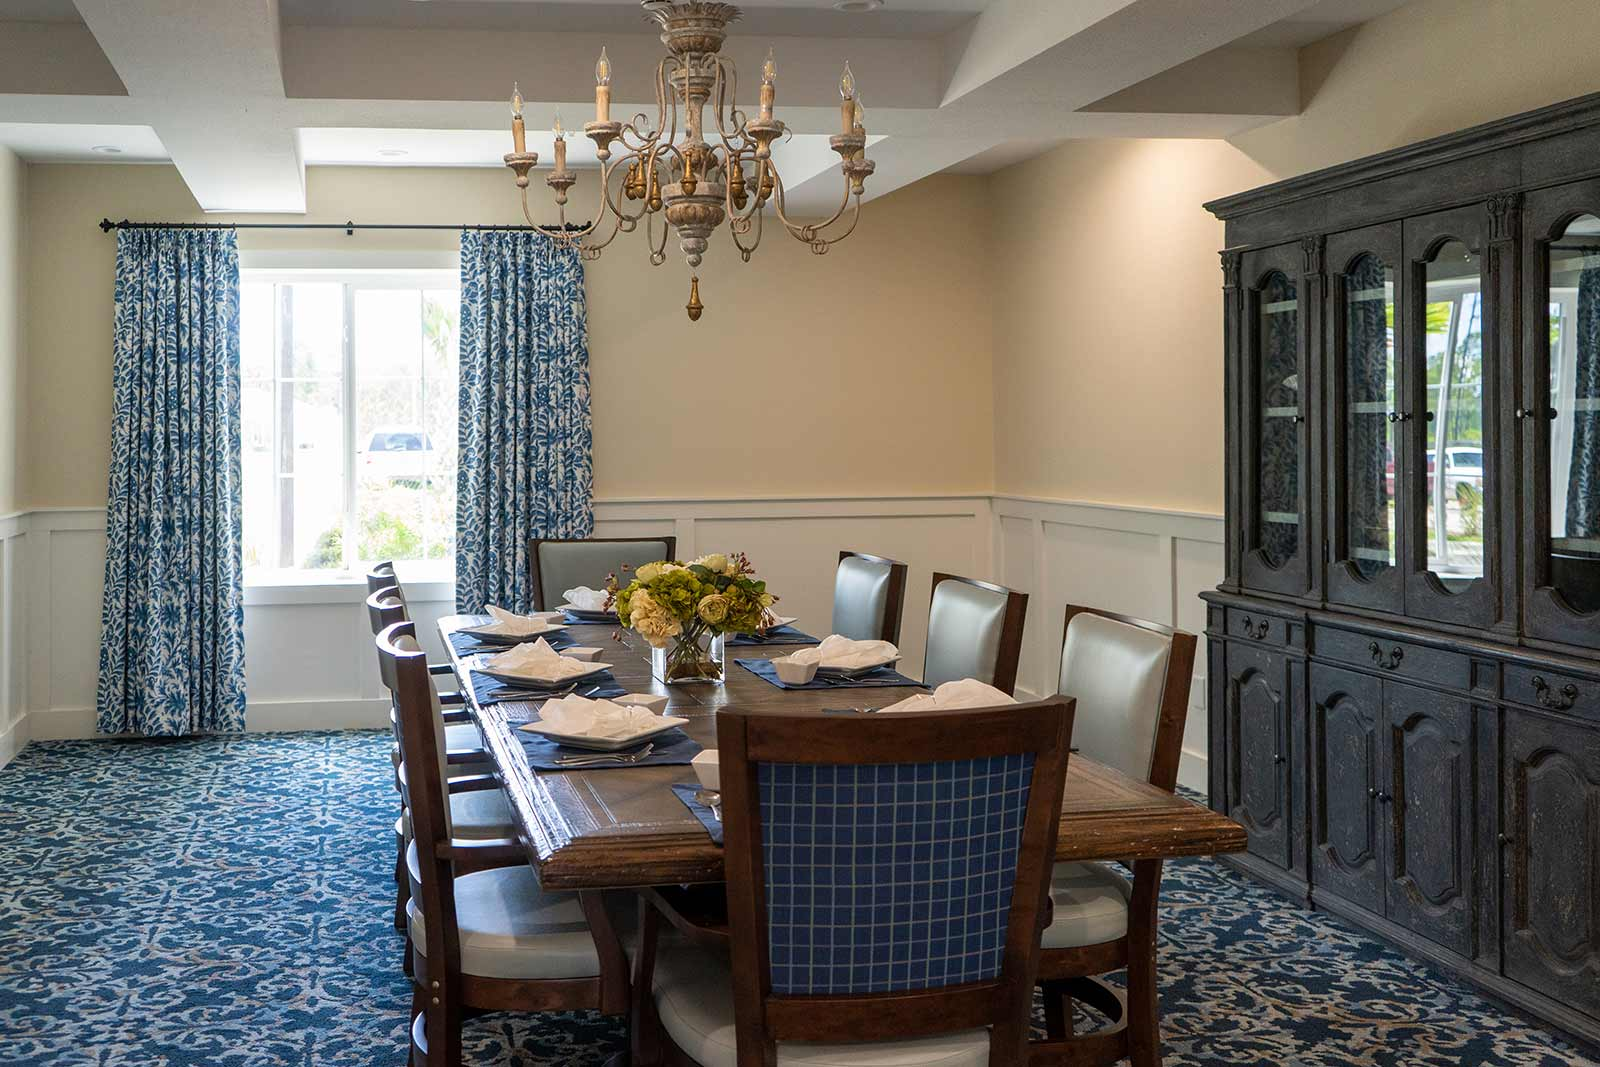 Private Dining Room For Special Occasions At Seagrass Village Of Panama City Beach